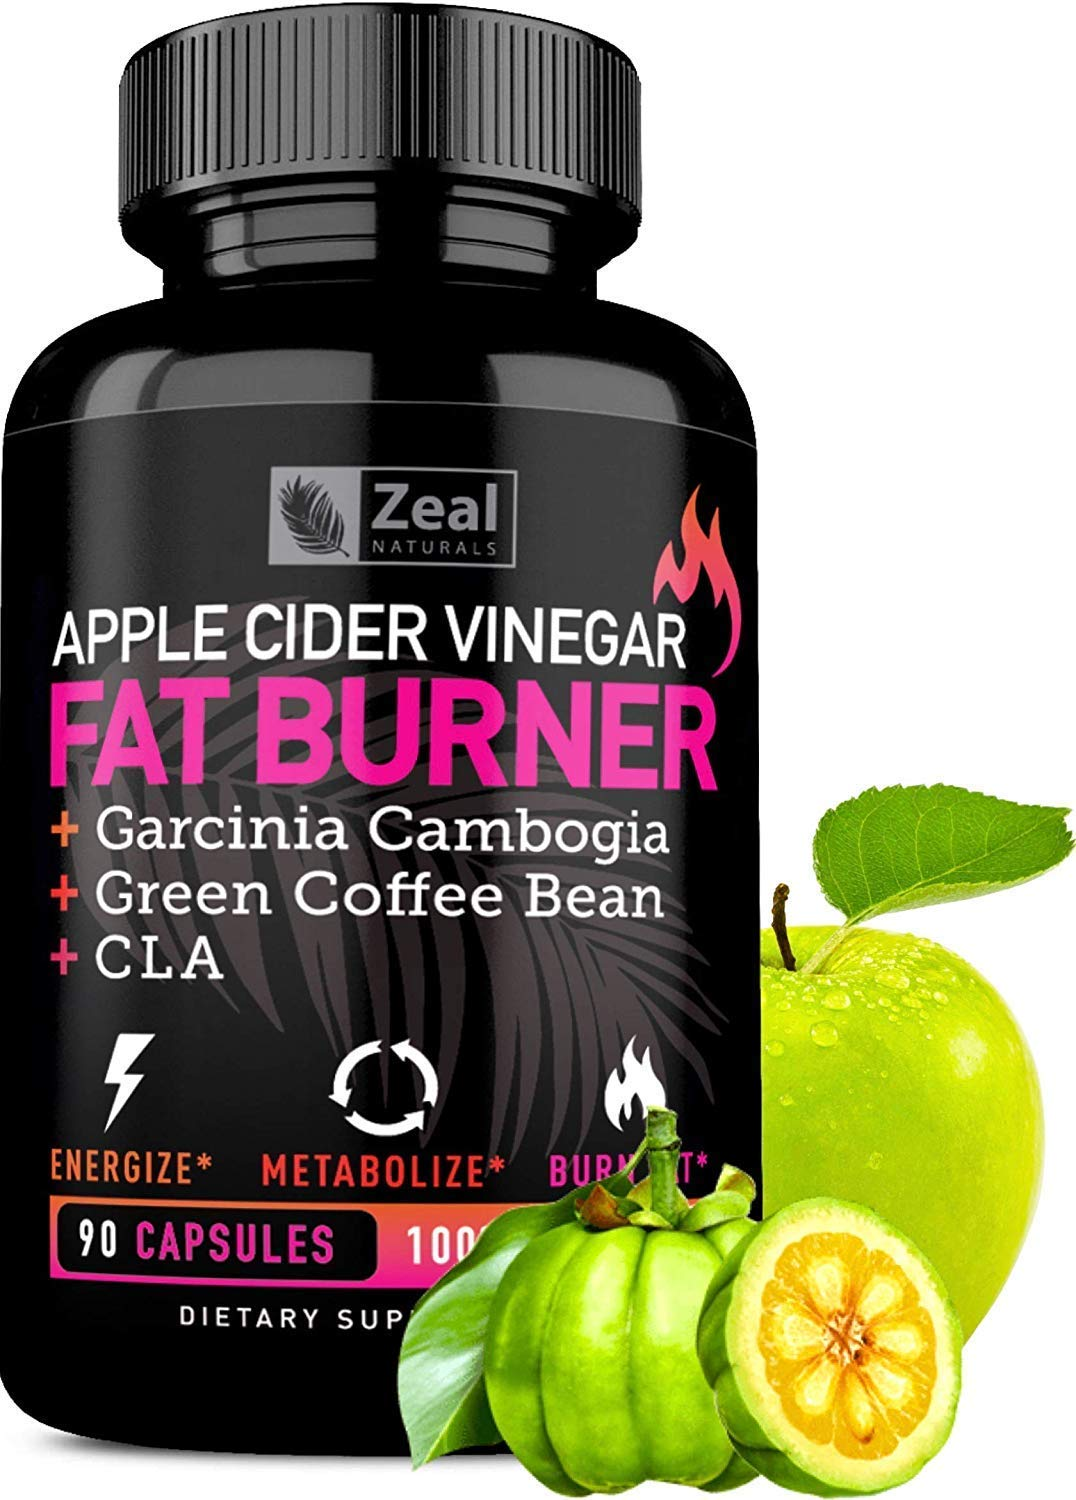 Apple Cider Vinegar Weight Loss Pills for Women - Garcinia Cambogia + Apple Cider Vinegar Pills for Weight Loss w. CLA & Green Coffee Bean Green Tea Fat Burner Pills - Detox Cleanse Weight Loss Pills by Zeal Naturals